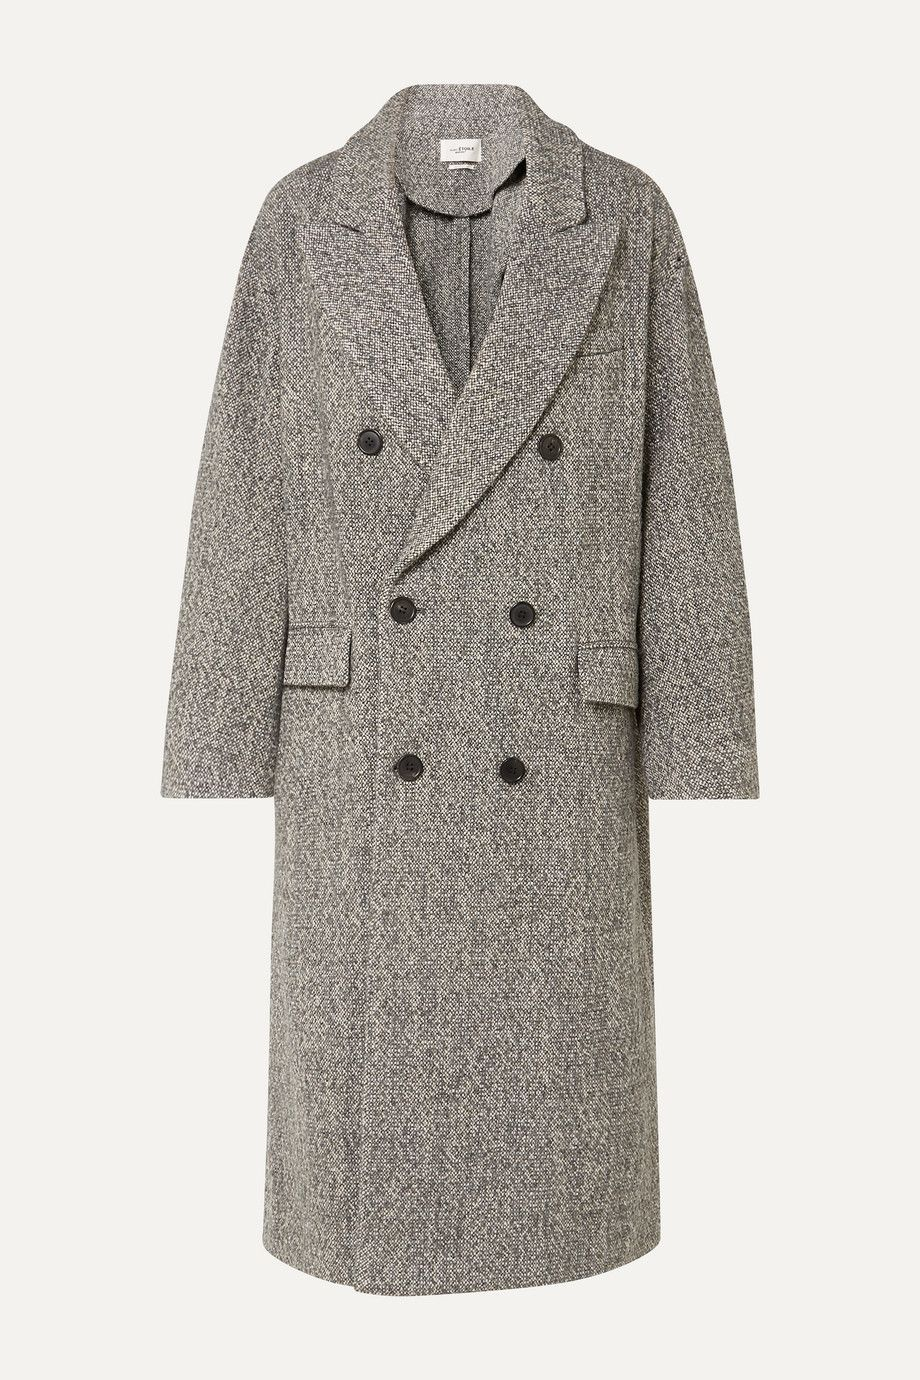 isabel-marant-etoile-habra-double-breasted-boucle-coat-net-a-porter-sale